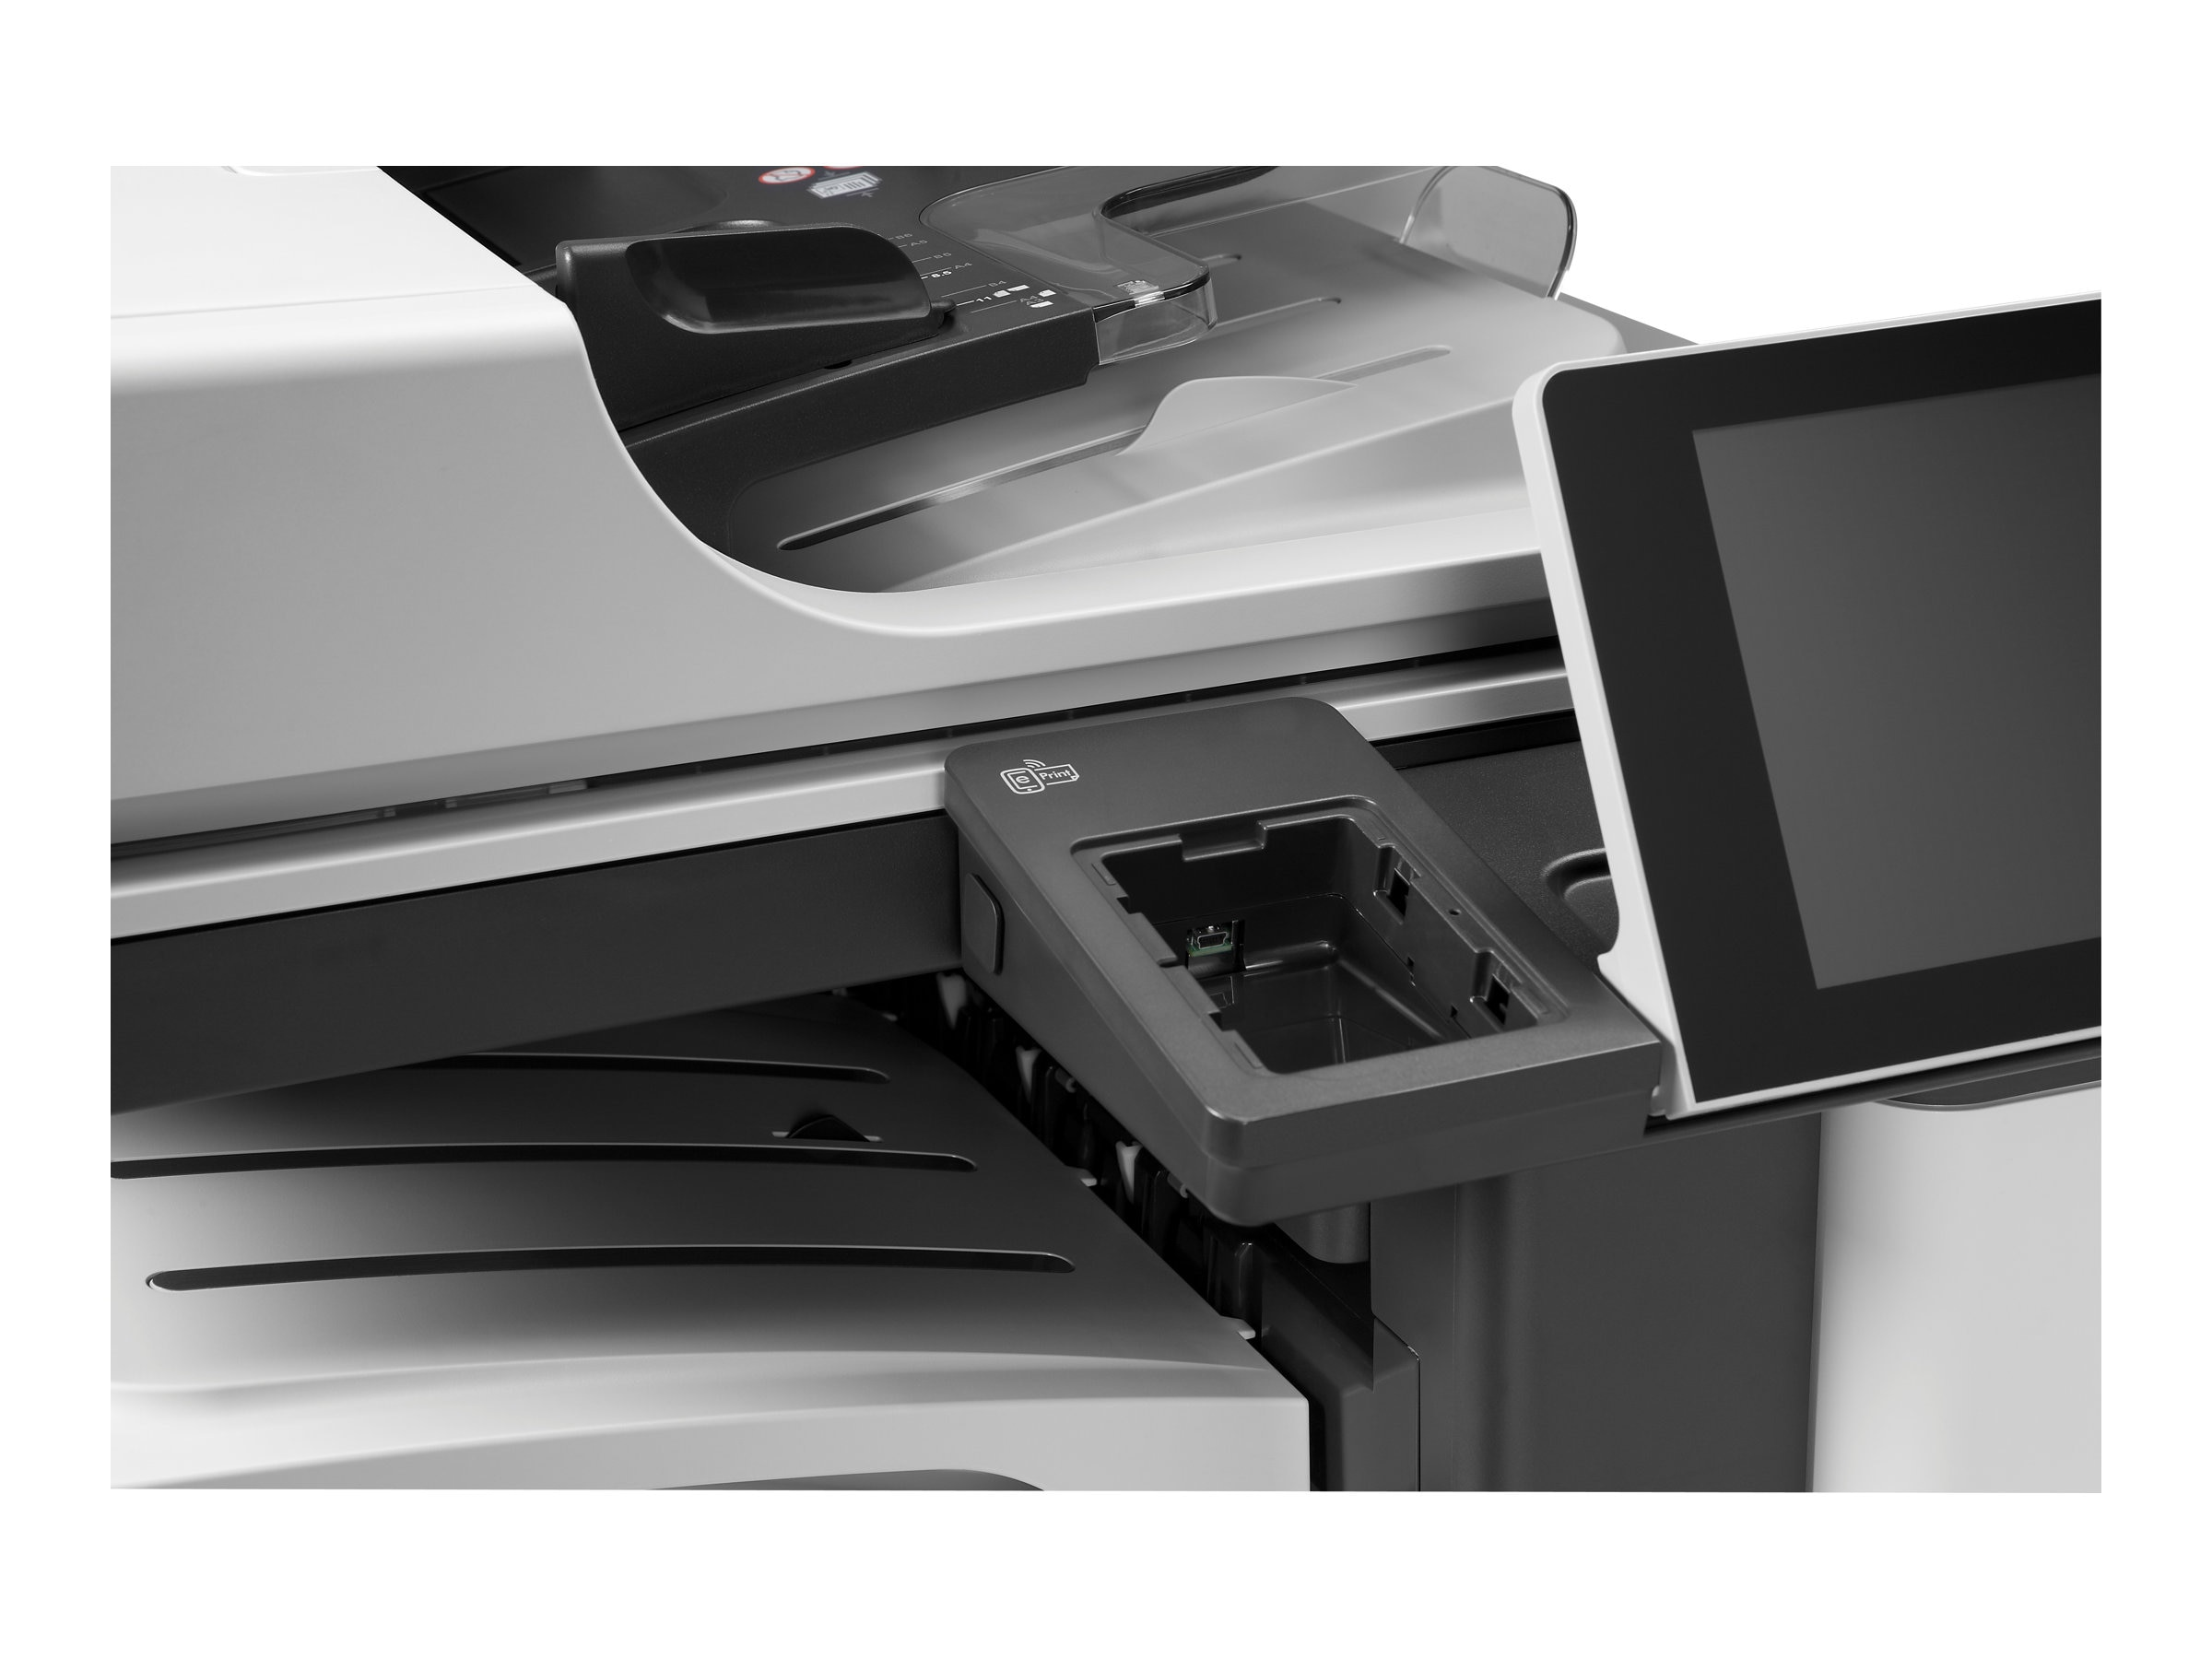 Refurb. HP LaserJet Enterprise 700 Color MFP M775z, CC524AR#BGJ